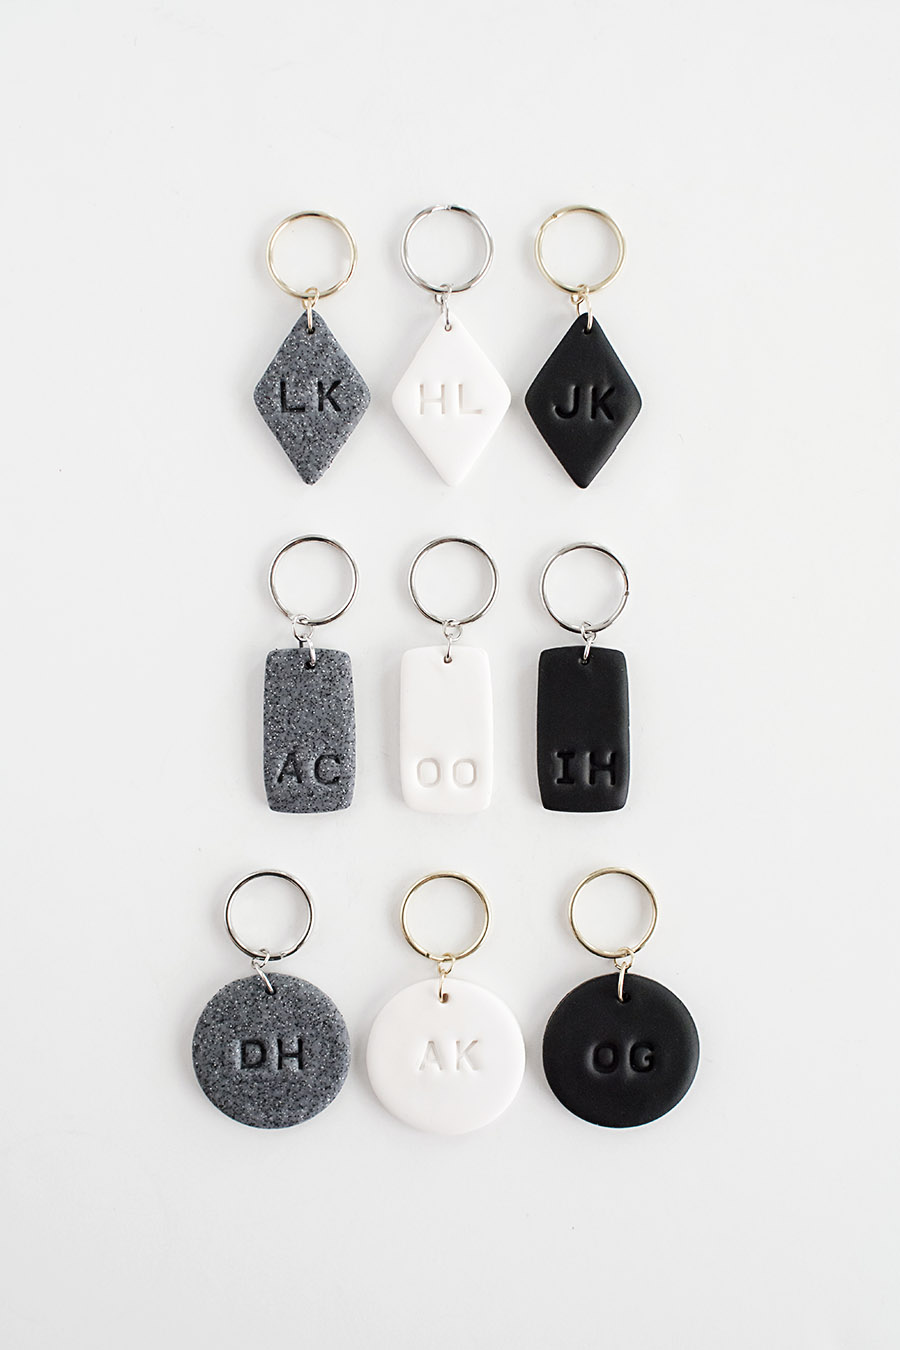 DIY - Monogram Clay Keychains